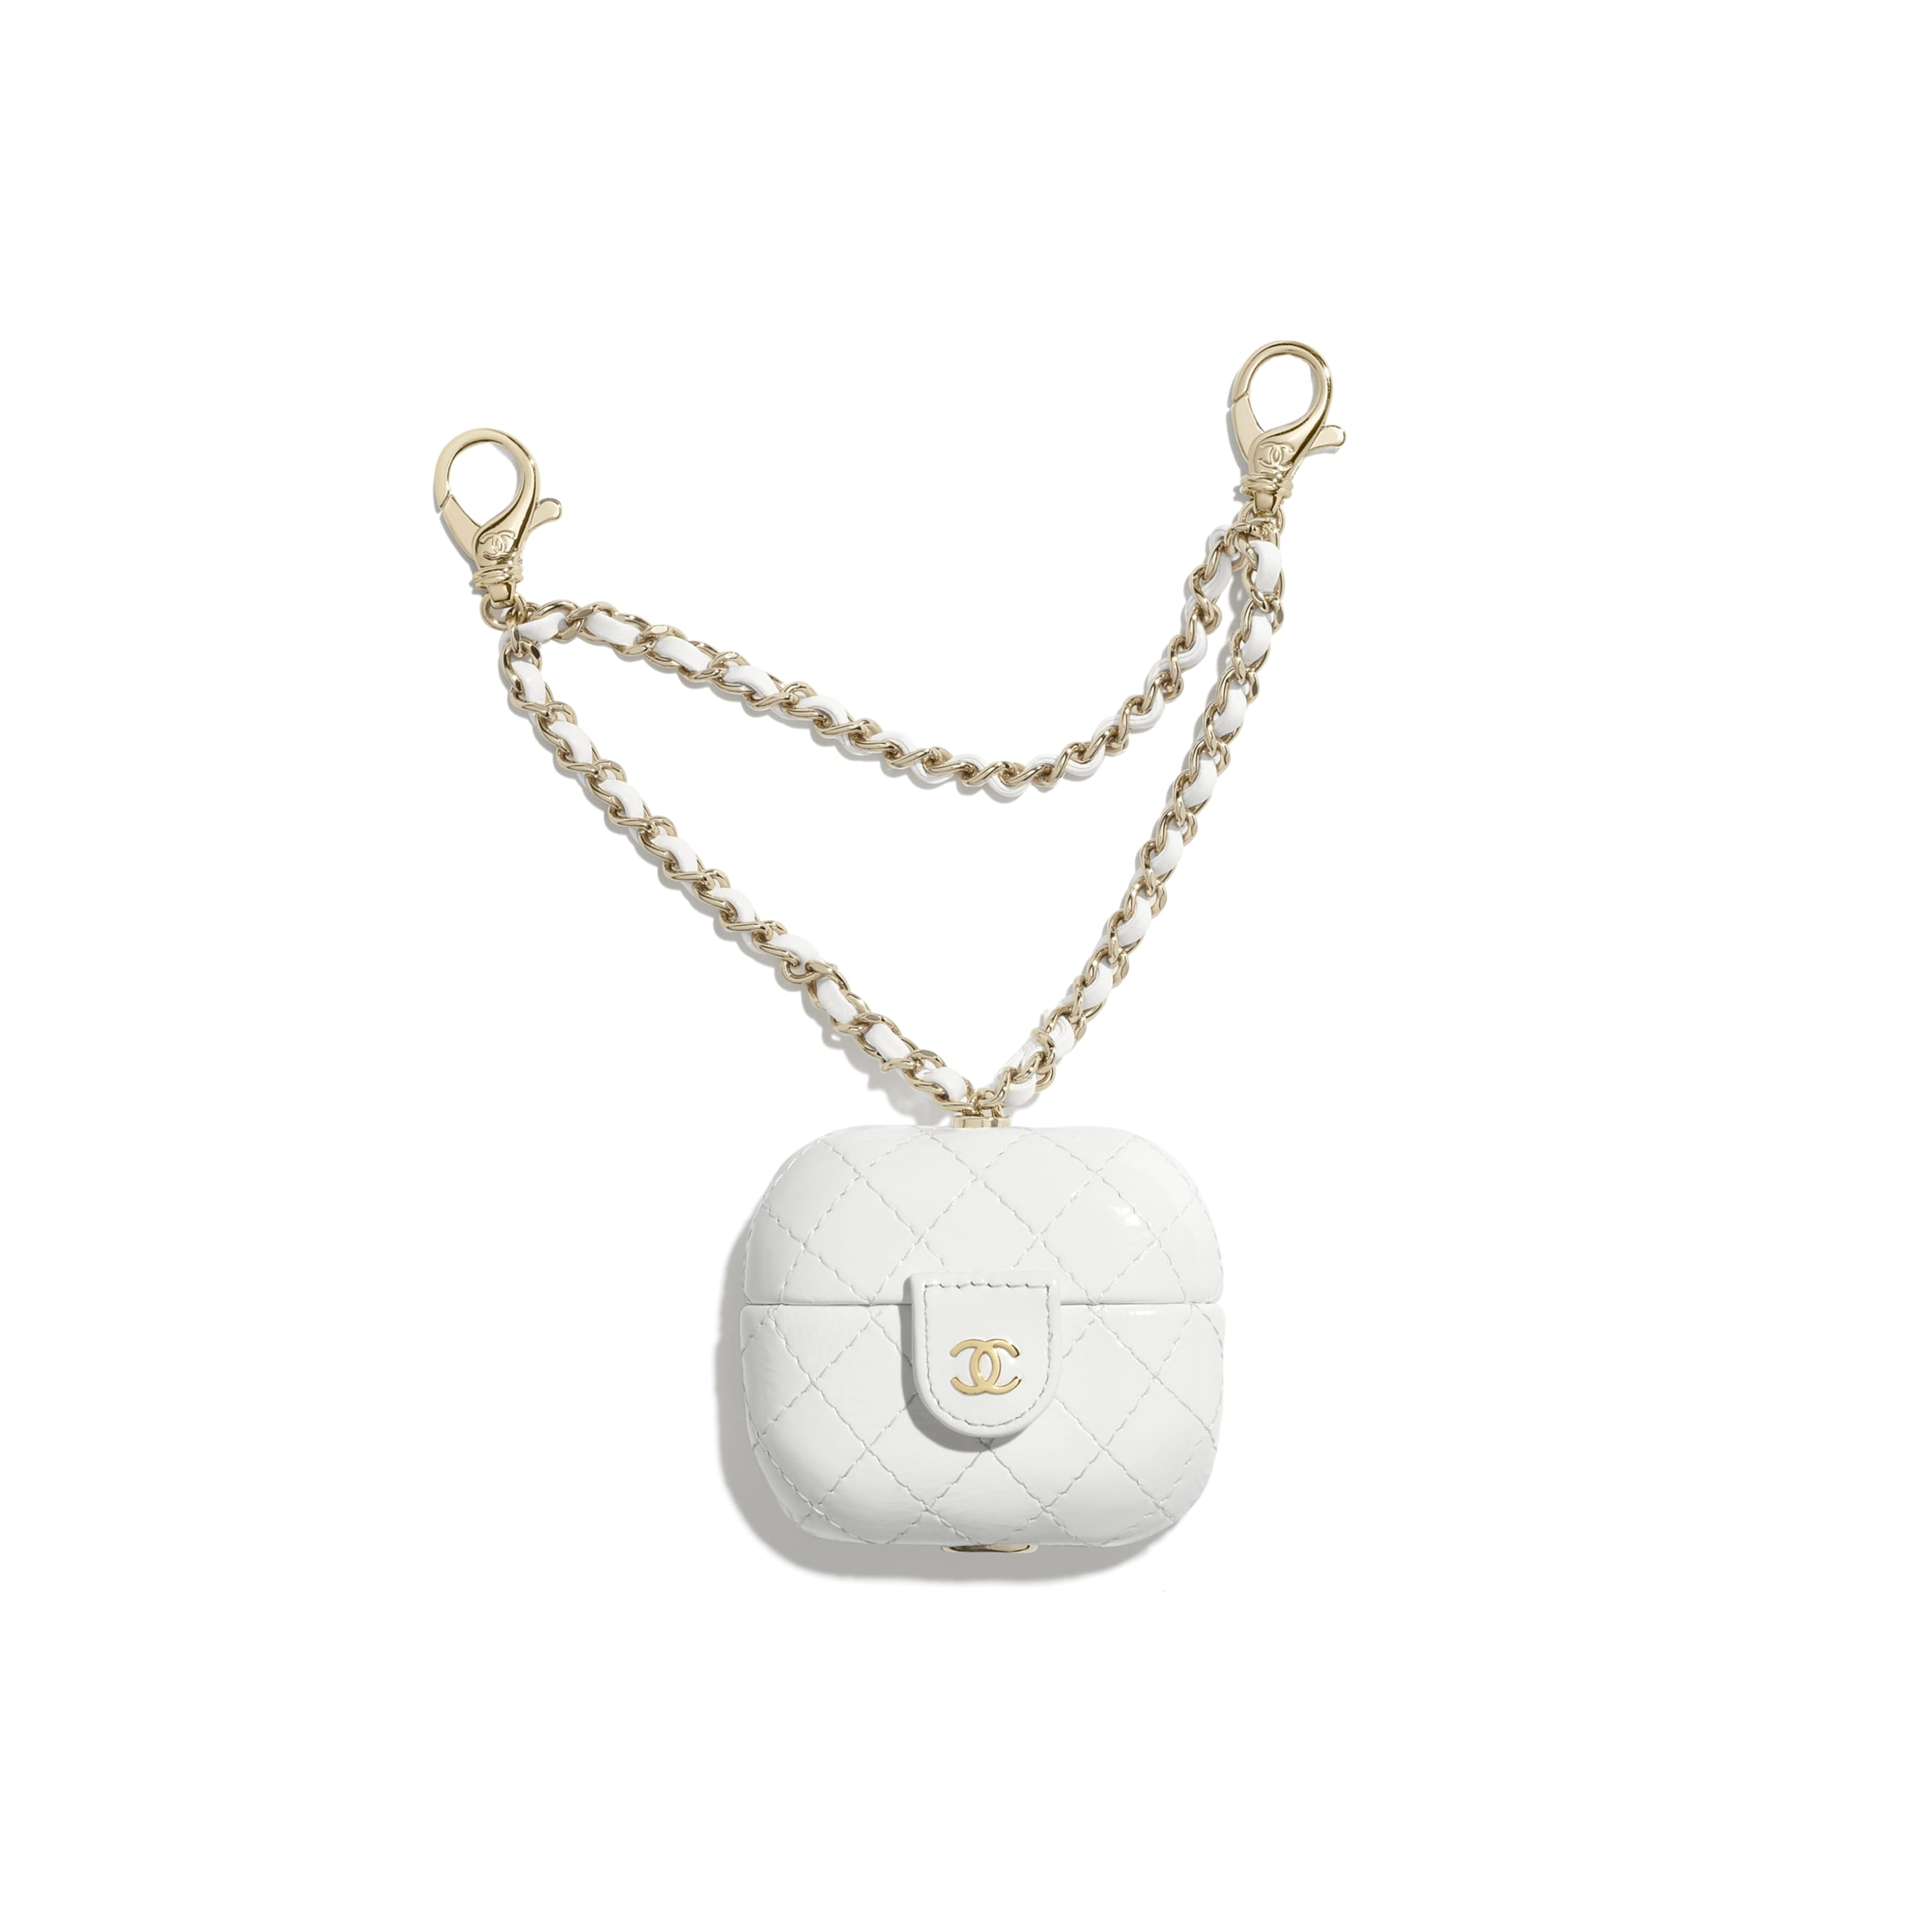 AirPods Pro Case - White - Shiny Crumpled Calfskin & Gold-Tone Metal - CHANEL - Default view - see standard sized version